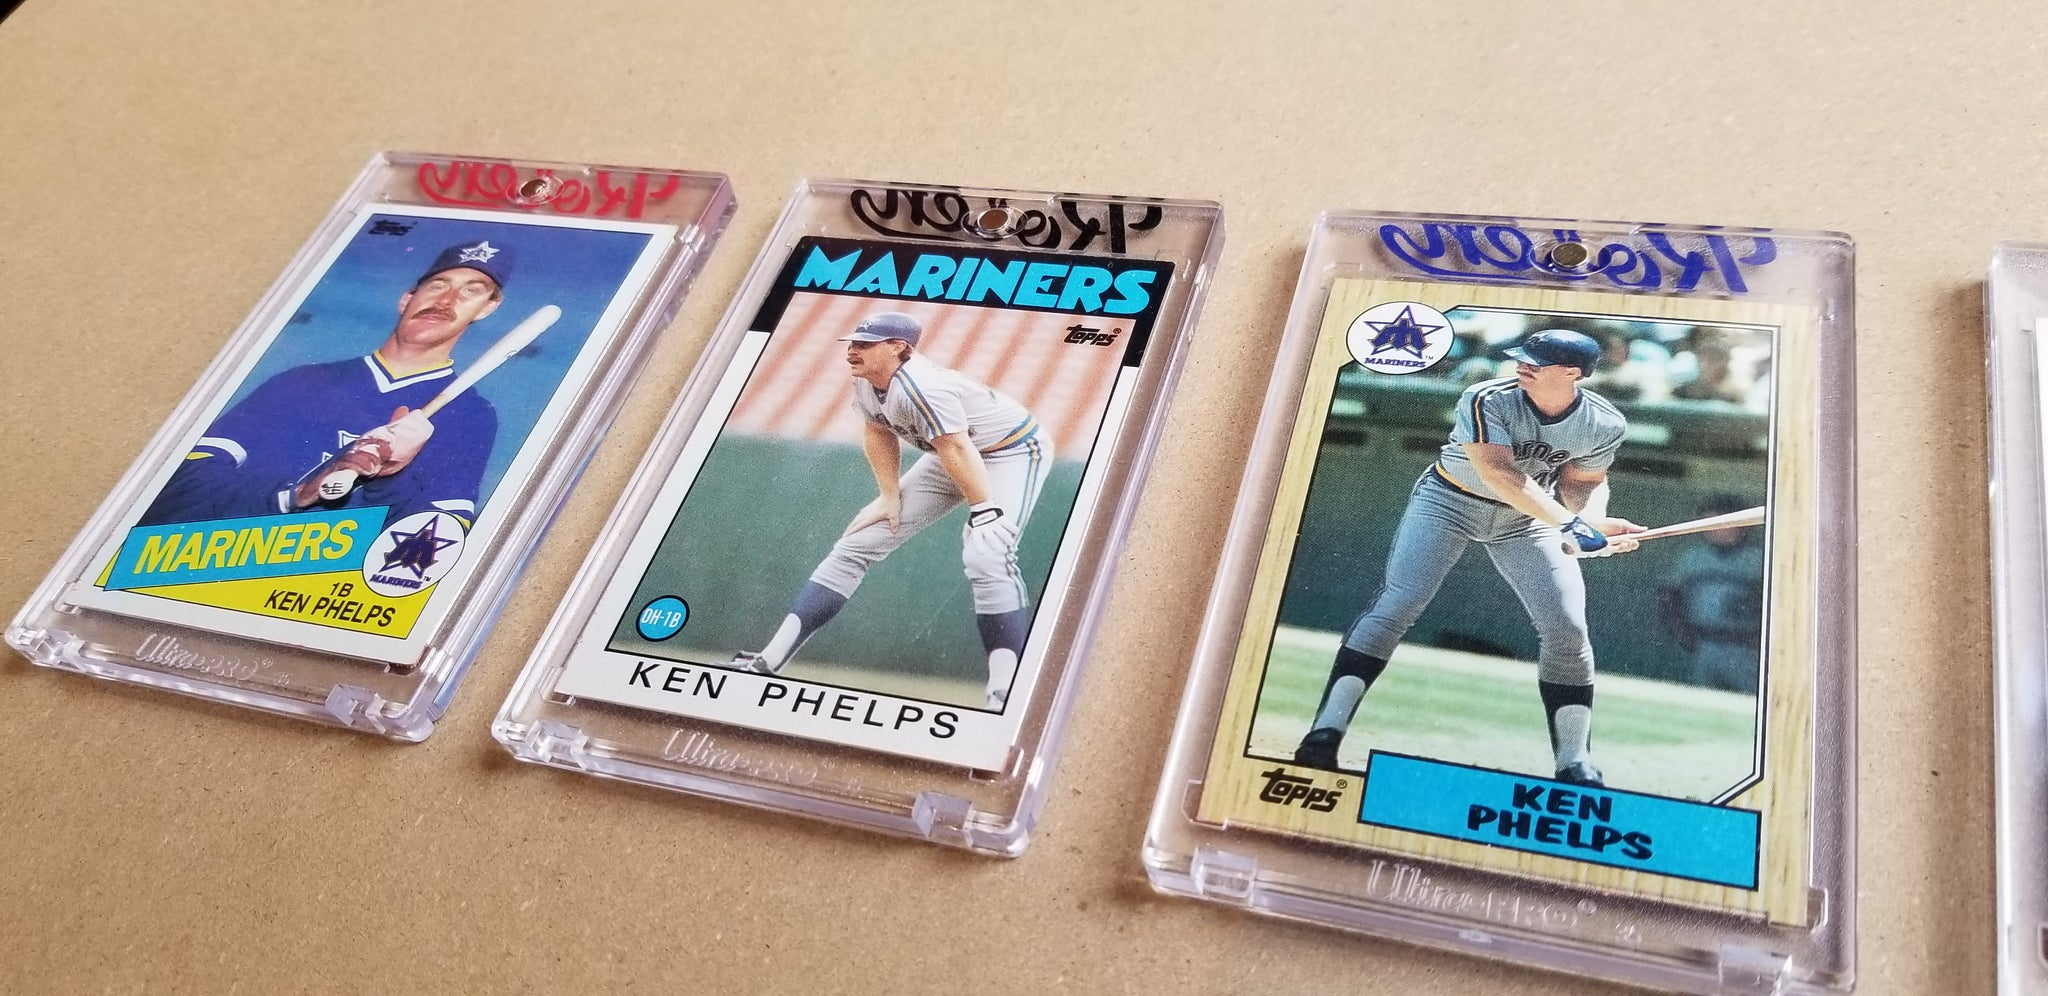 Baseball card art by Matthew Lee Rosen (aka Matthew Rosen) - Gum Stick Collector Cards - Ken Phelps (Seinfeld)